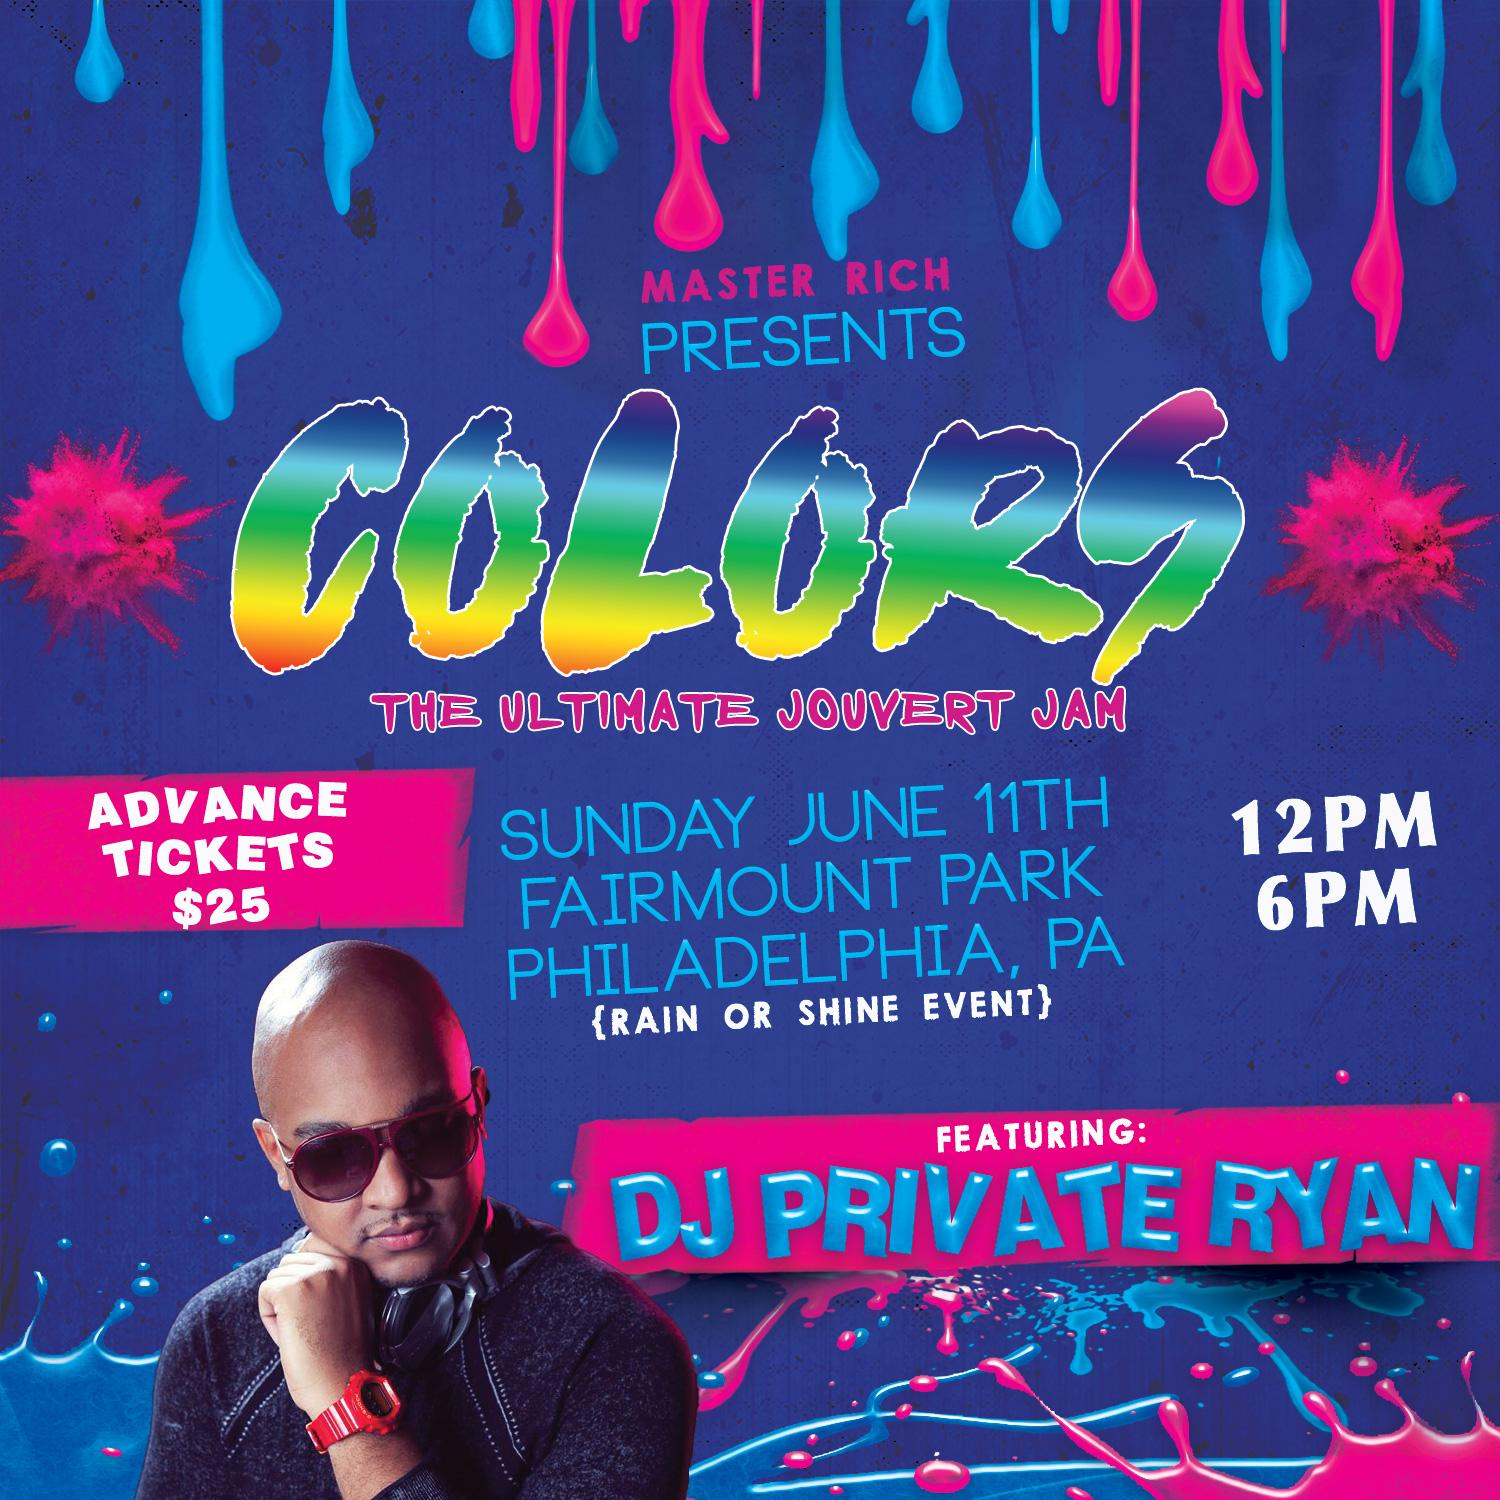 COLORS ~ THE ULTIMATE JOUVERT JAM ft DJ PRIVATE RYAN. COLORS ~ THE ULTIMATE JOUVERT JAM ft DJ PRIVATE RYAN